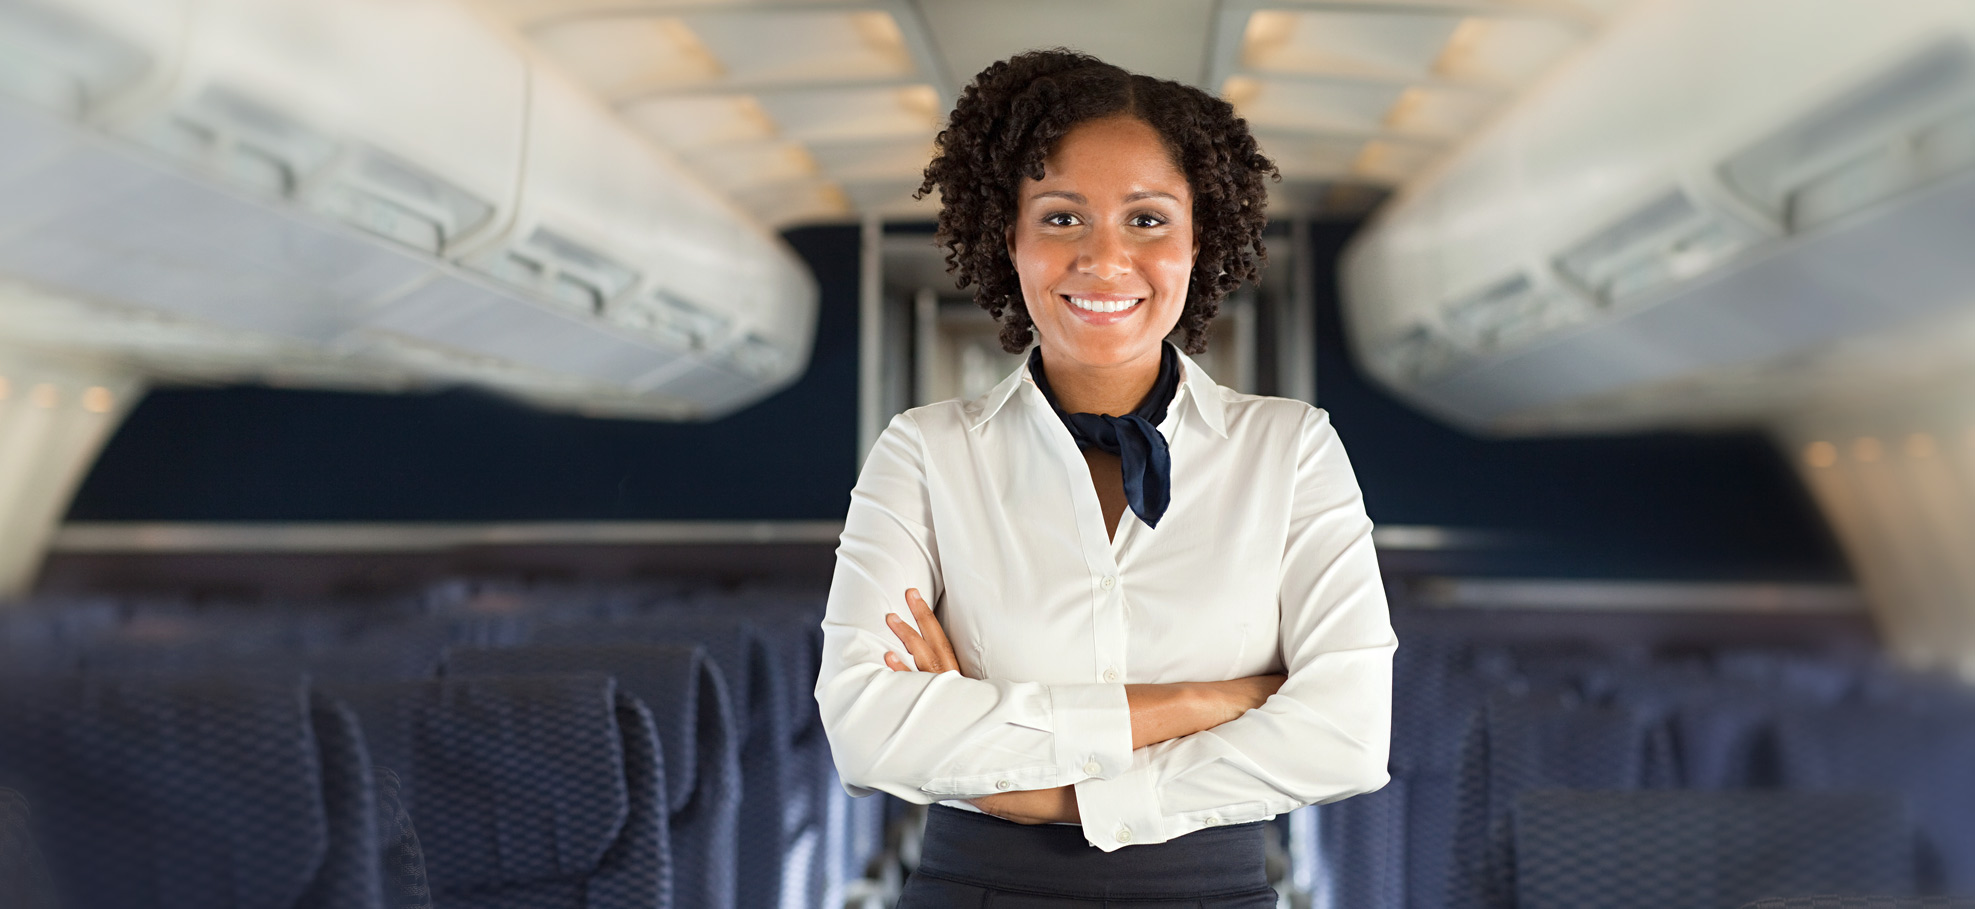 Find Air Hostess Jobs Locally and Internationally